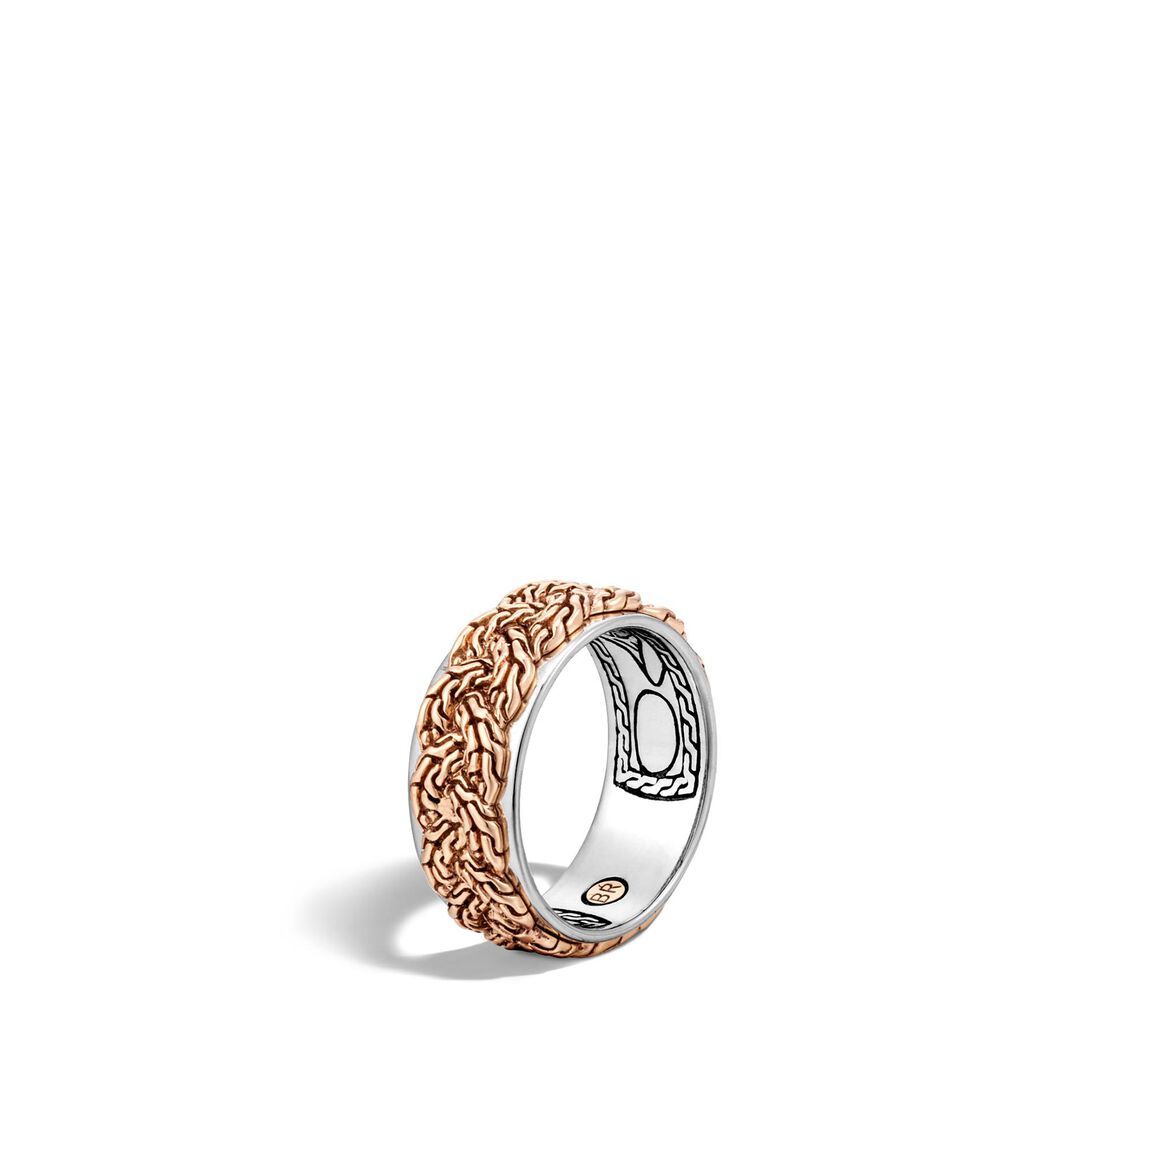 Braided Chain 9MM Band Ring in Silver and Bronze